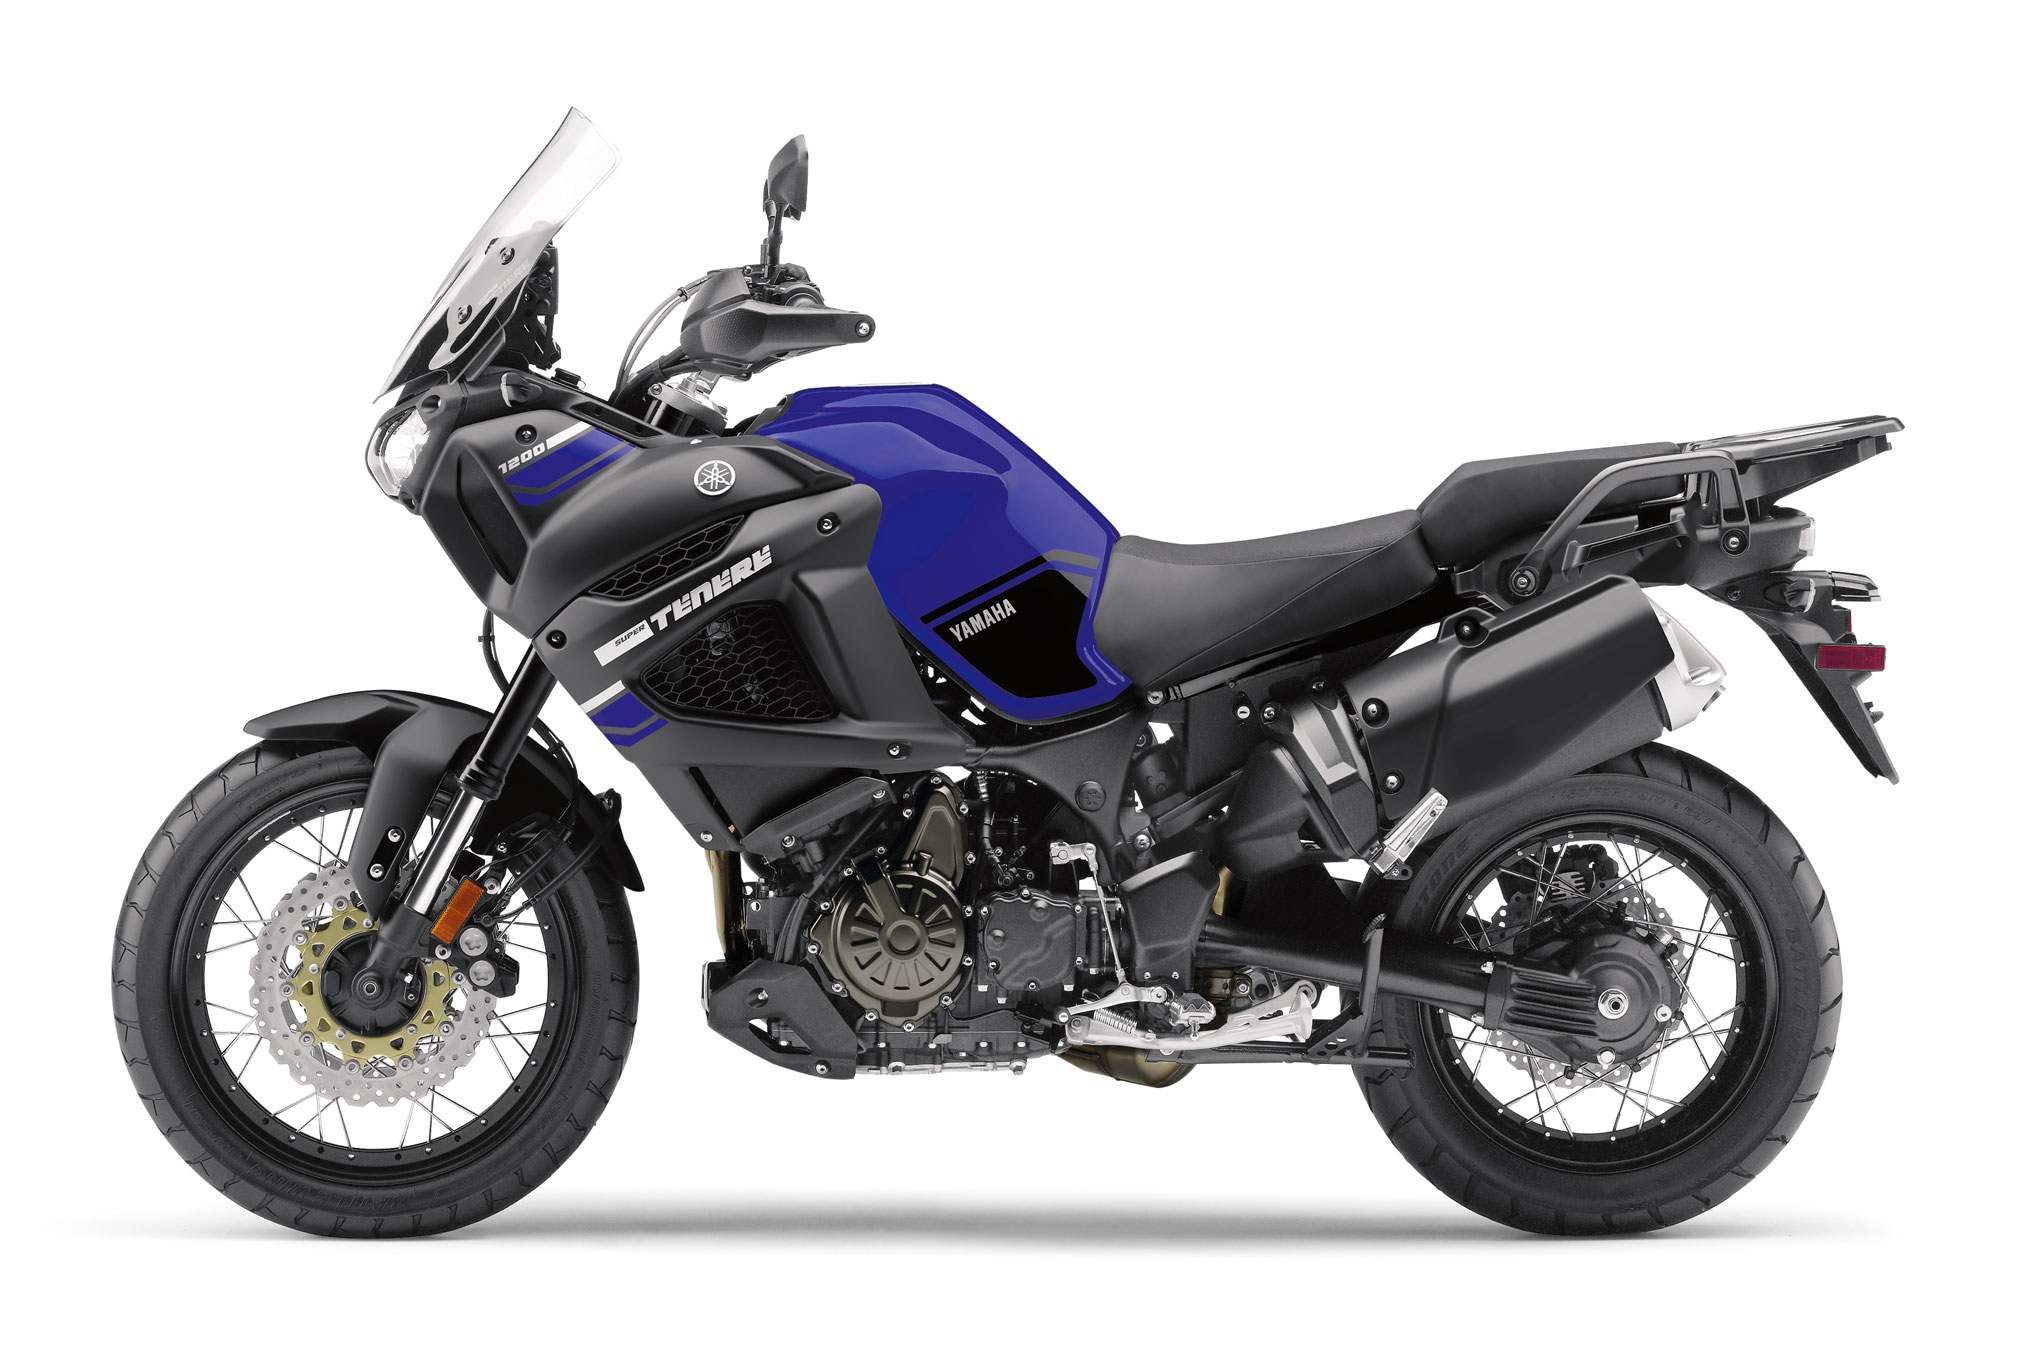 2018 yamaha super tenere review totalmotorcycle for Yamaha new motorcycles 2018